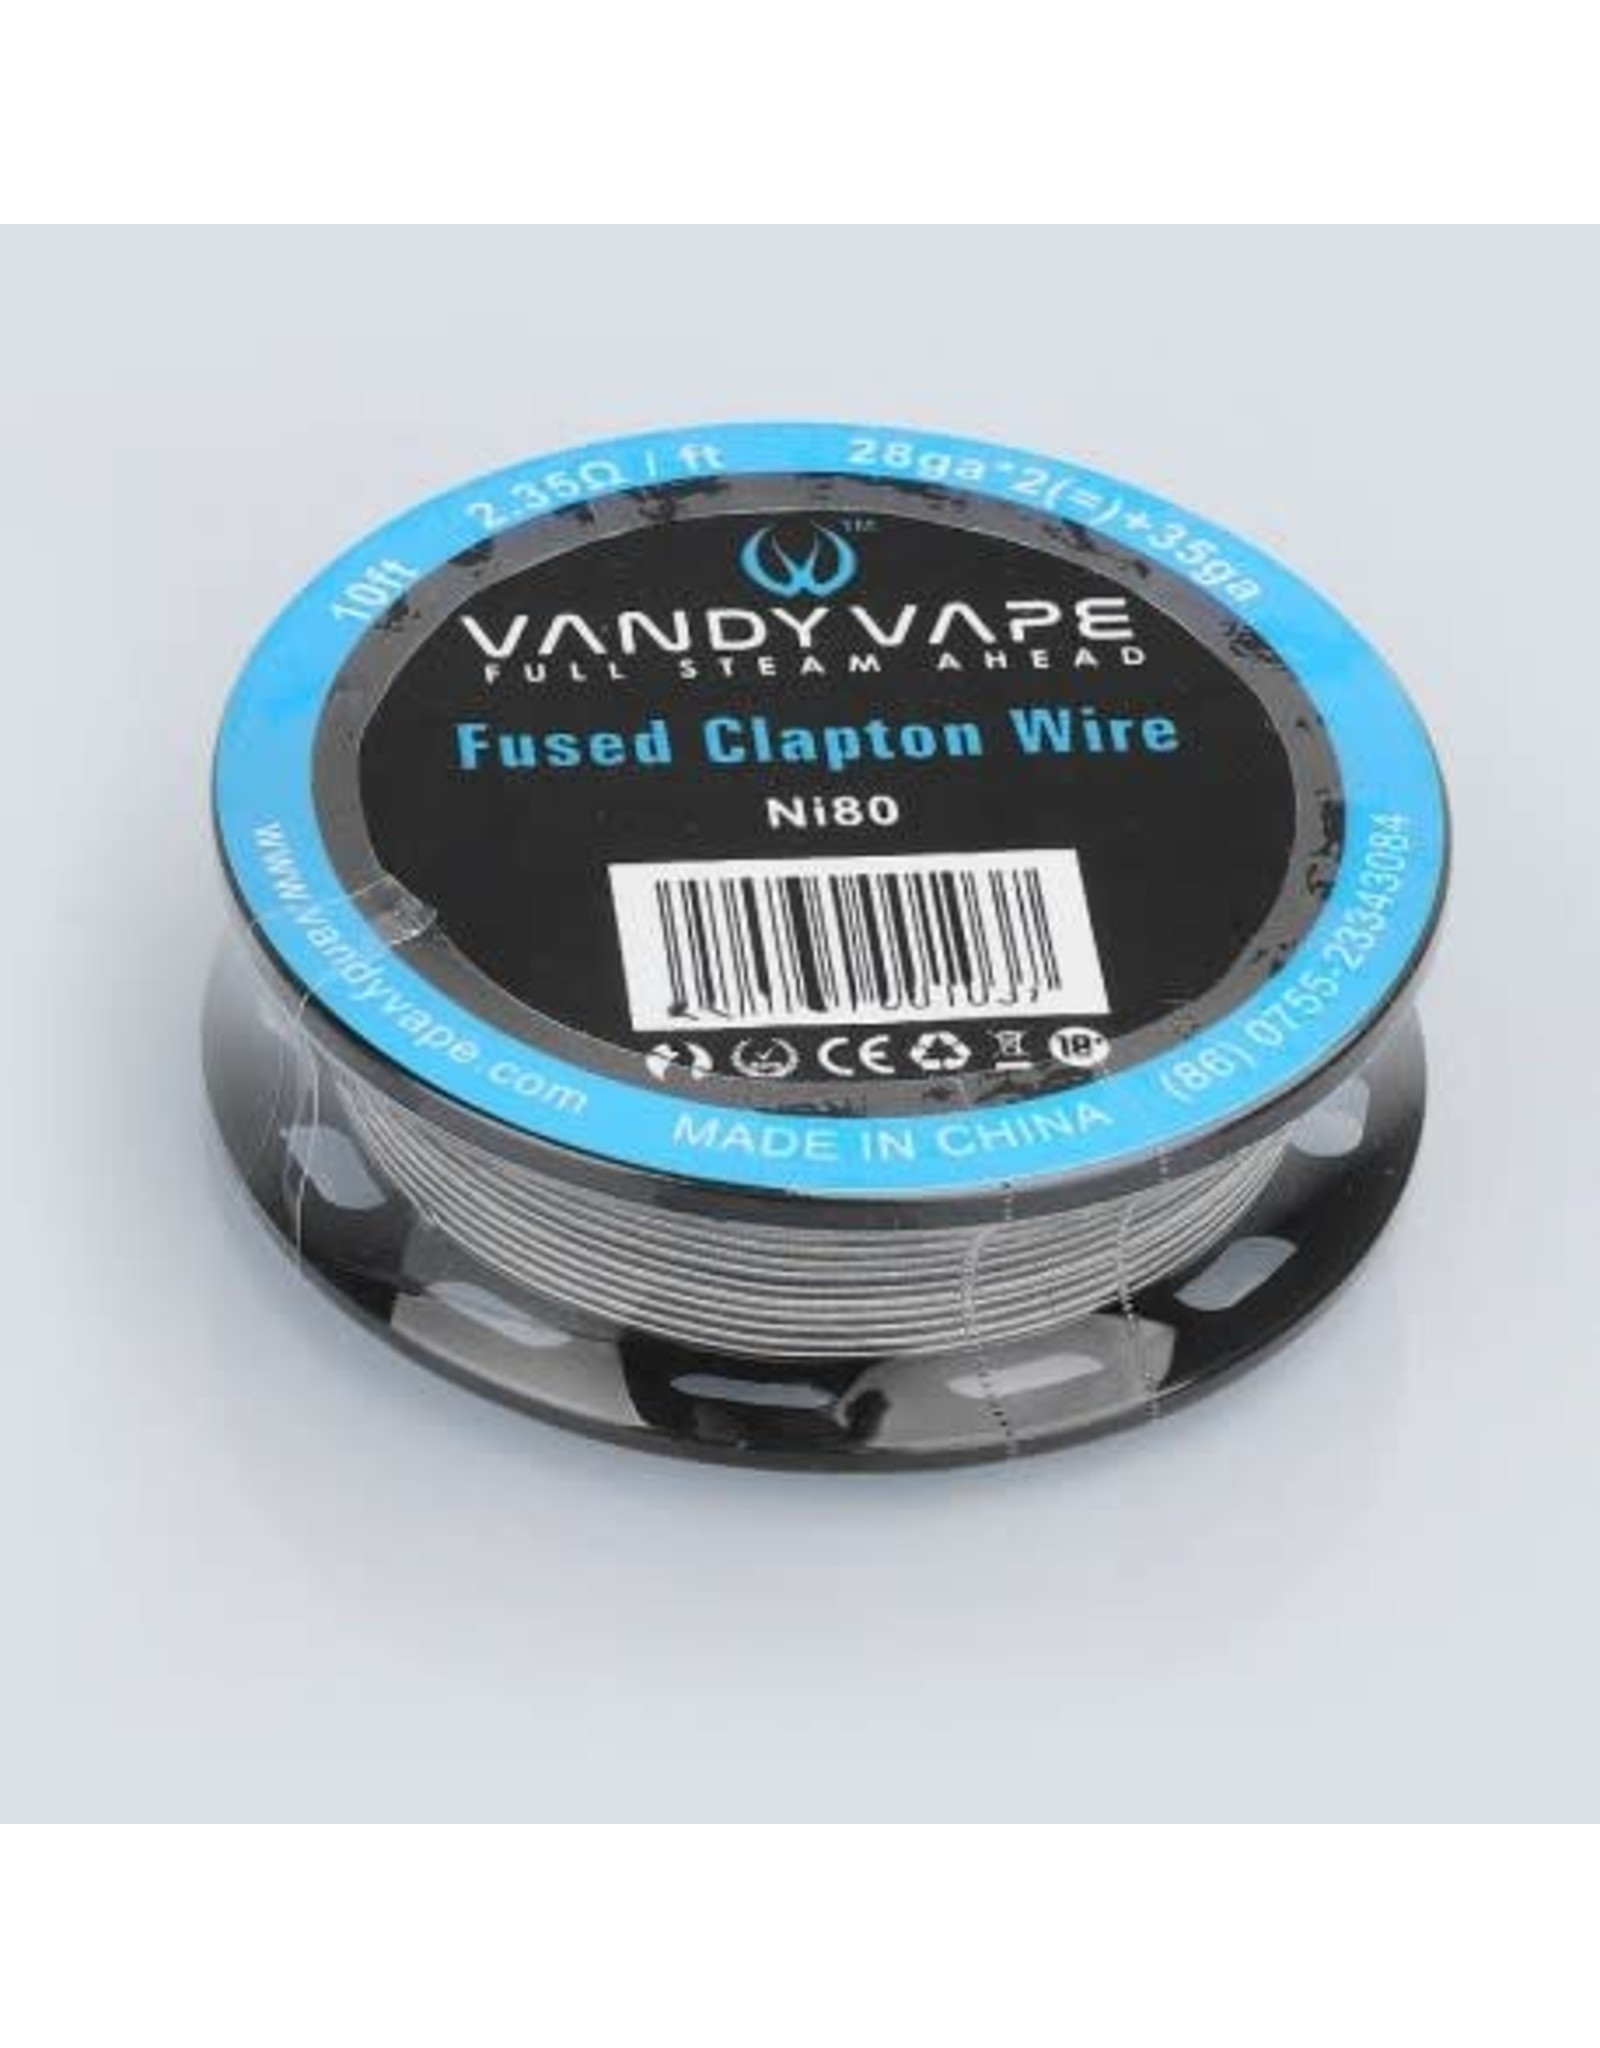 VandyVape Specialty Wire